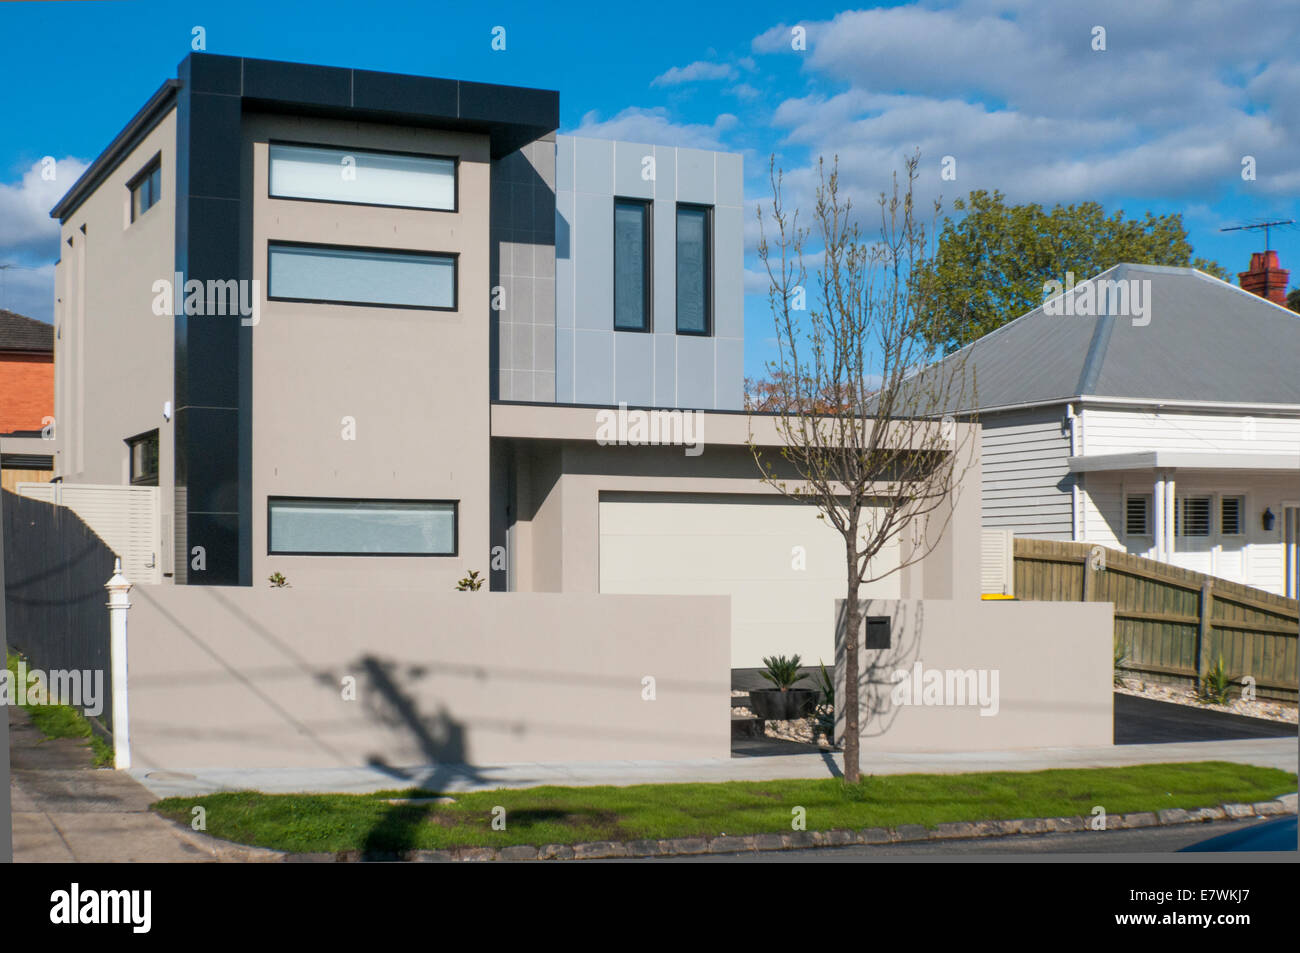 A starkly angular modern home clashes with older (Edwardian) architectural styles in the Melbourne suburb of Caulfield - Stock Image